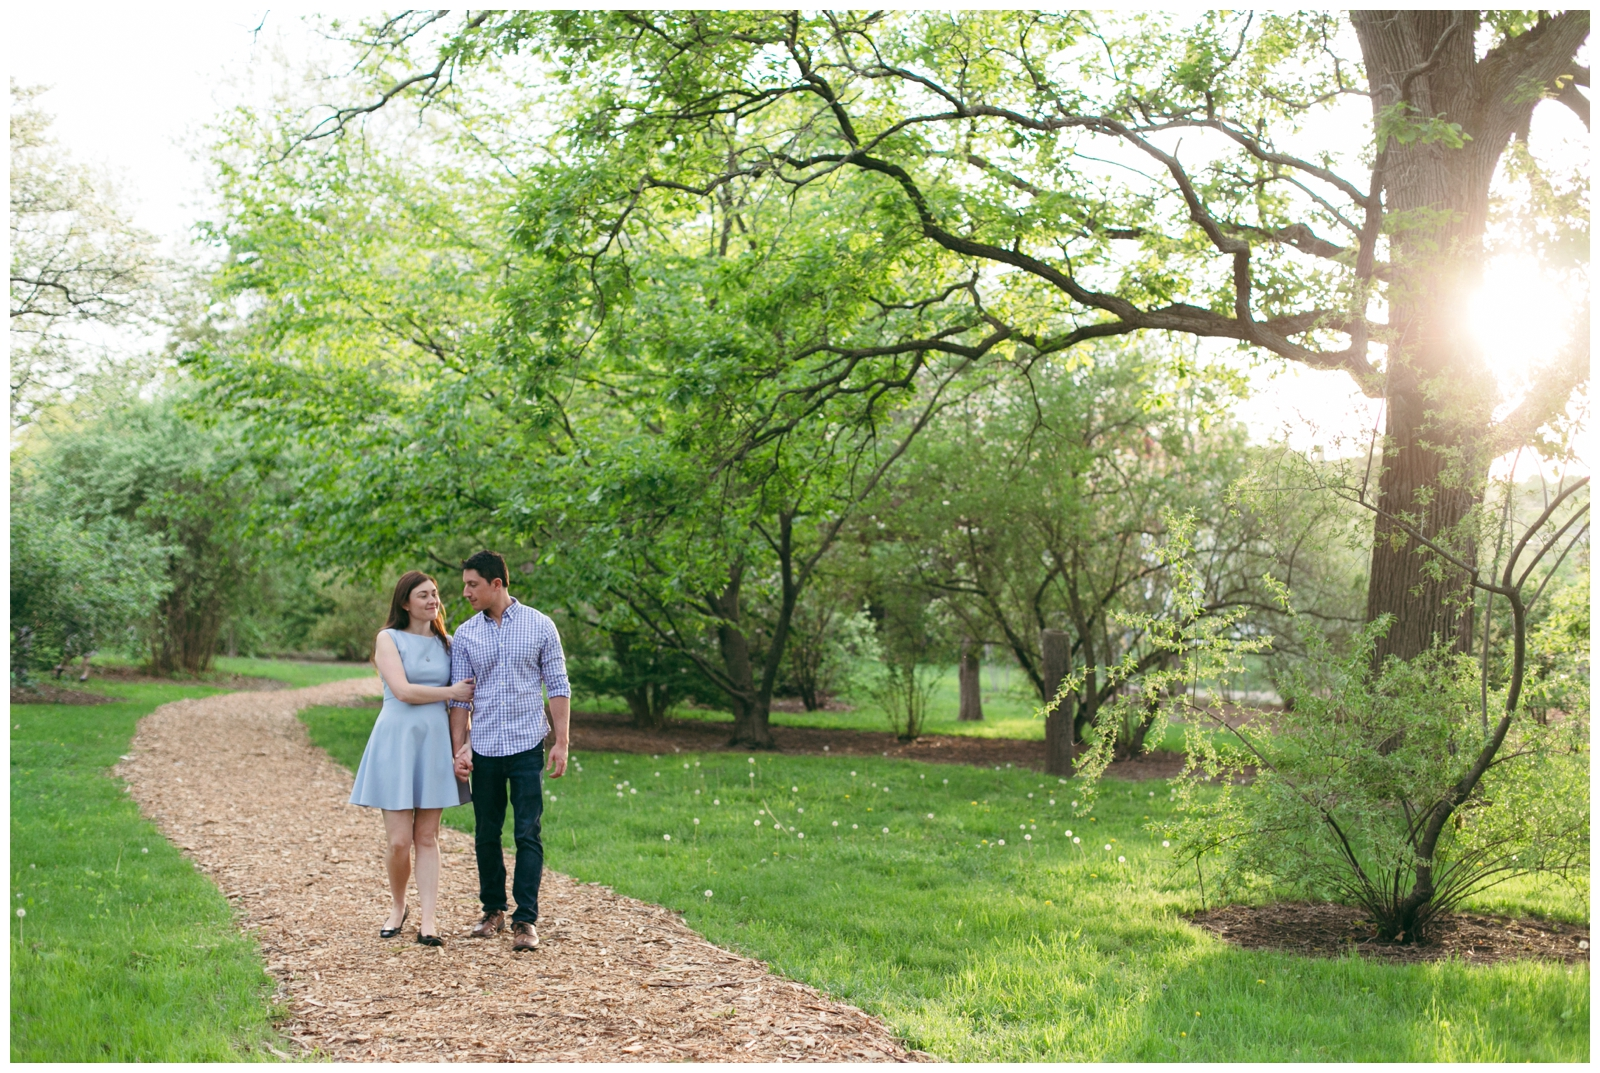 Arnold-Arboretum-Engagement-Boston-Wedding-Photographer-Bailey-Q-Photo-016.jpg